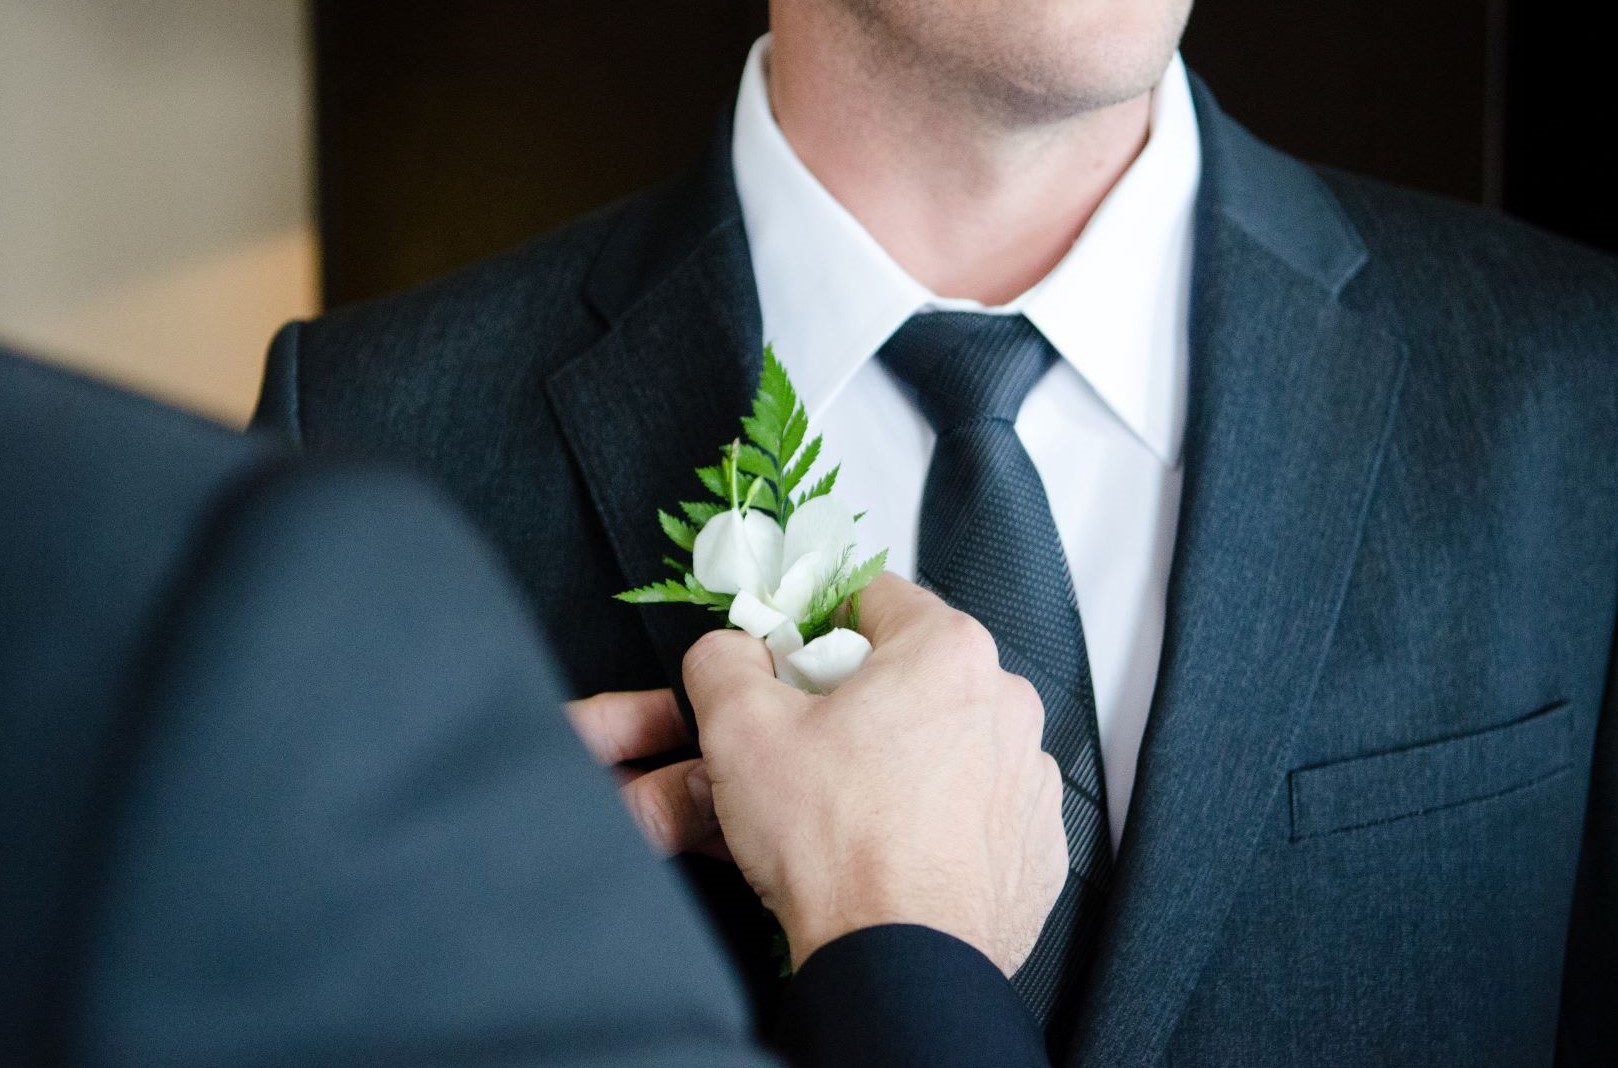 How to wear a boutonniere - Friend helping attach a boutonniere to a suit